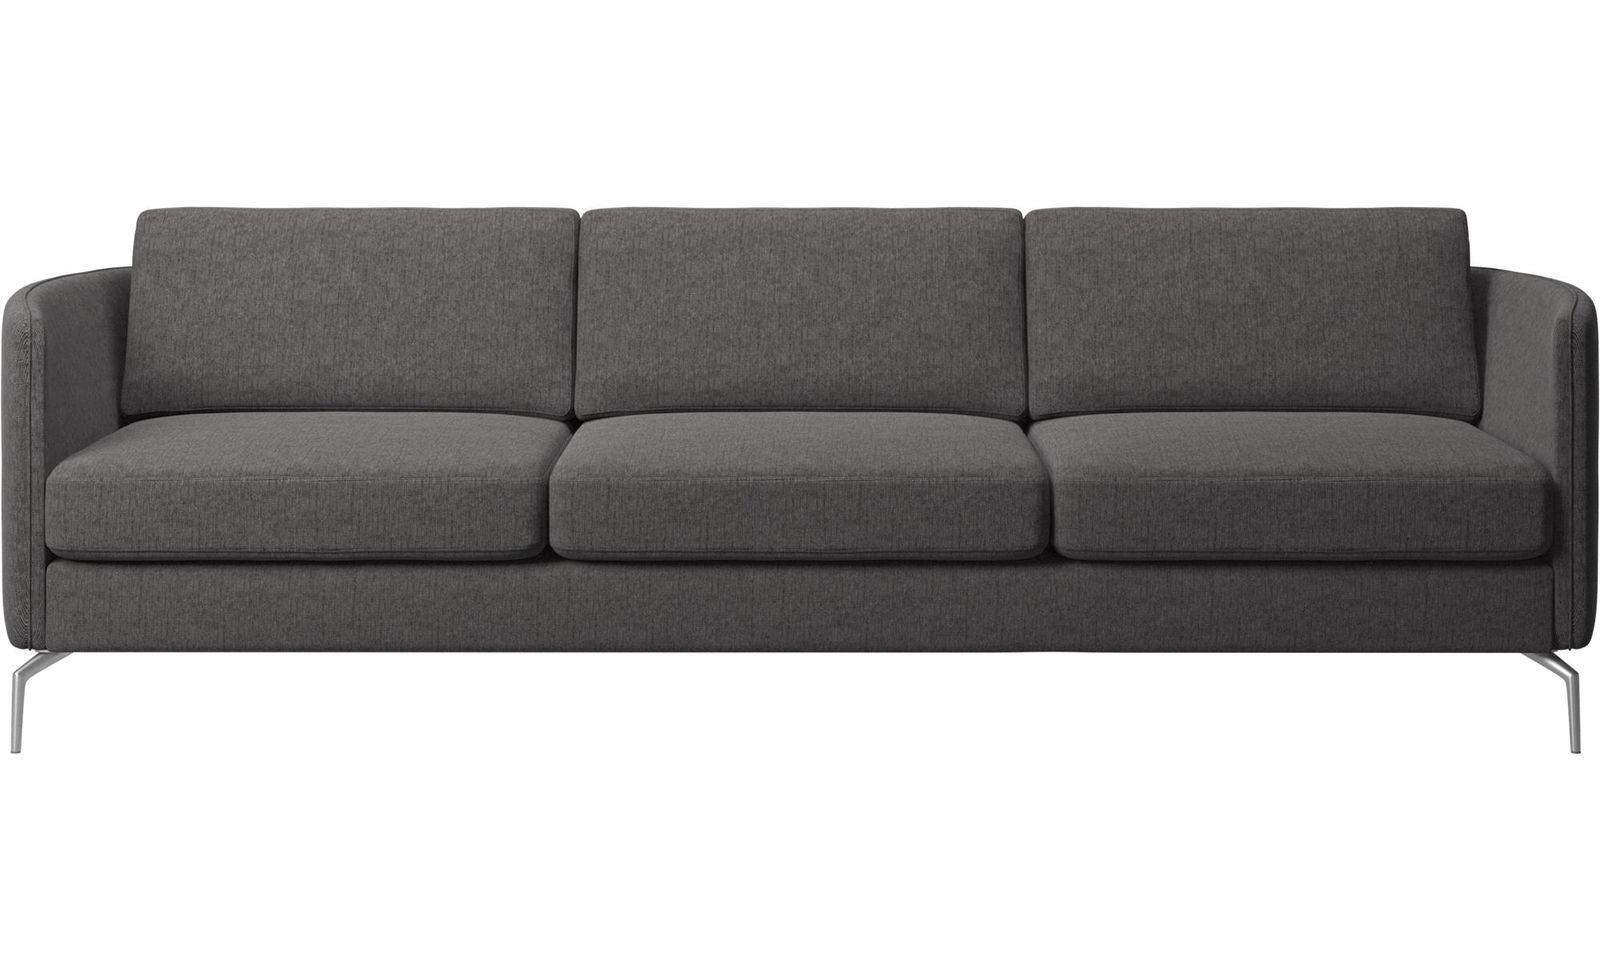 3 Seater Sofas Osaka Sofa Regular Seat Grey Fabric Nv